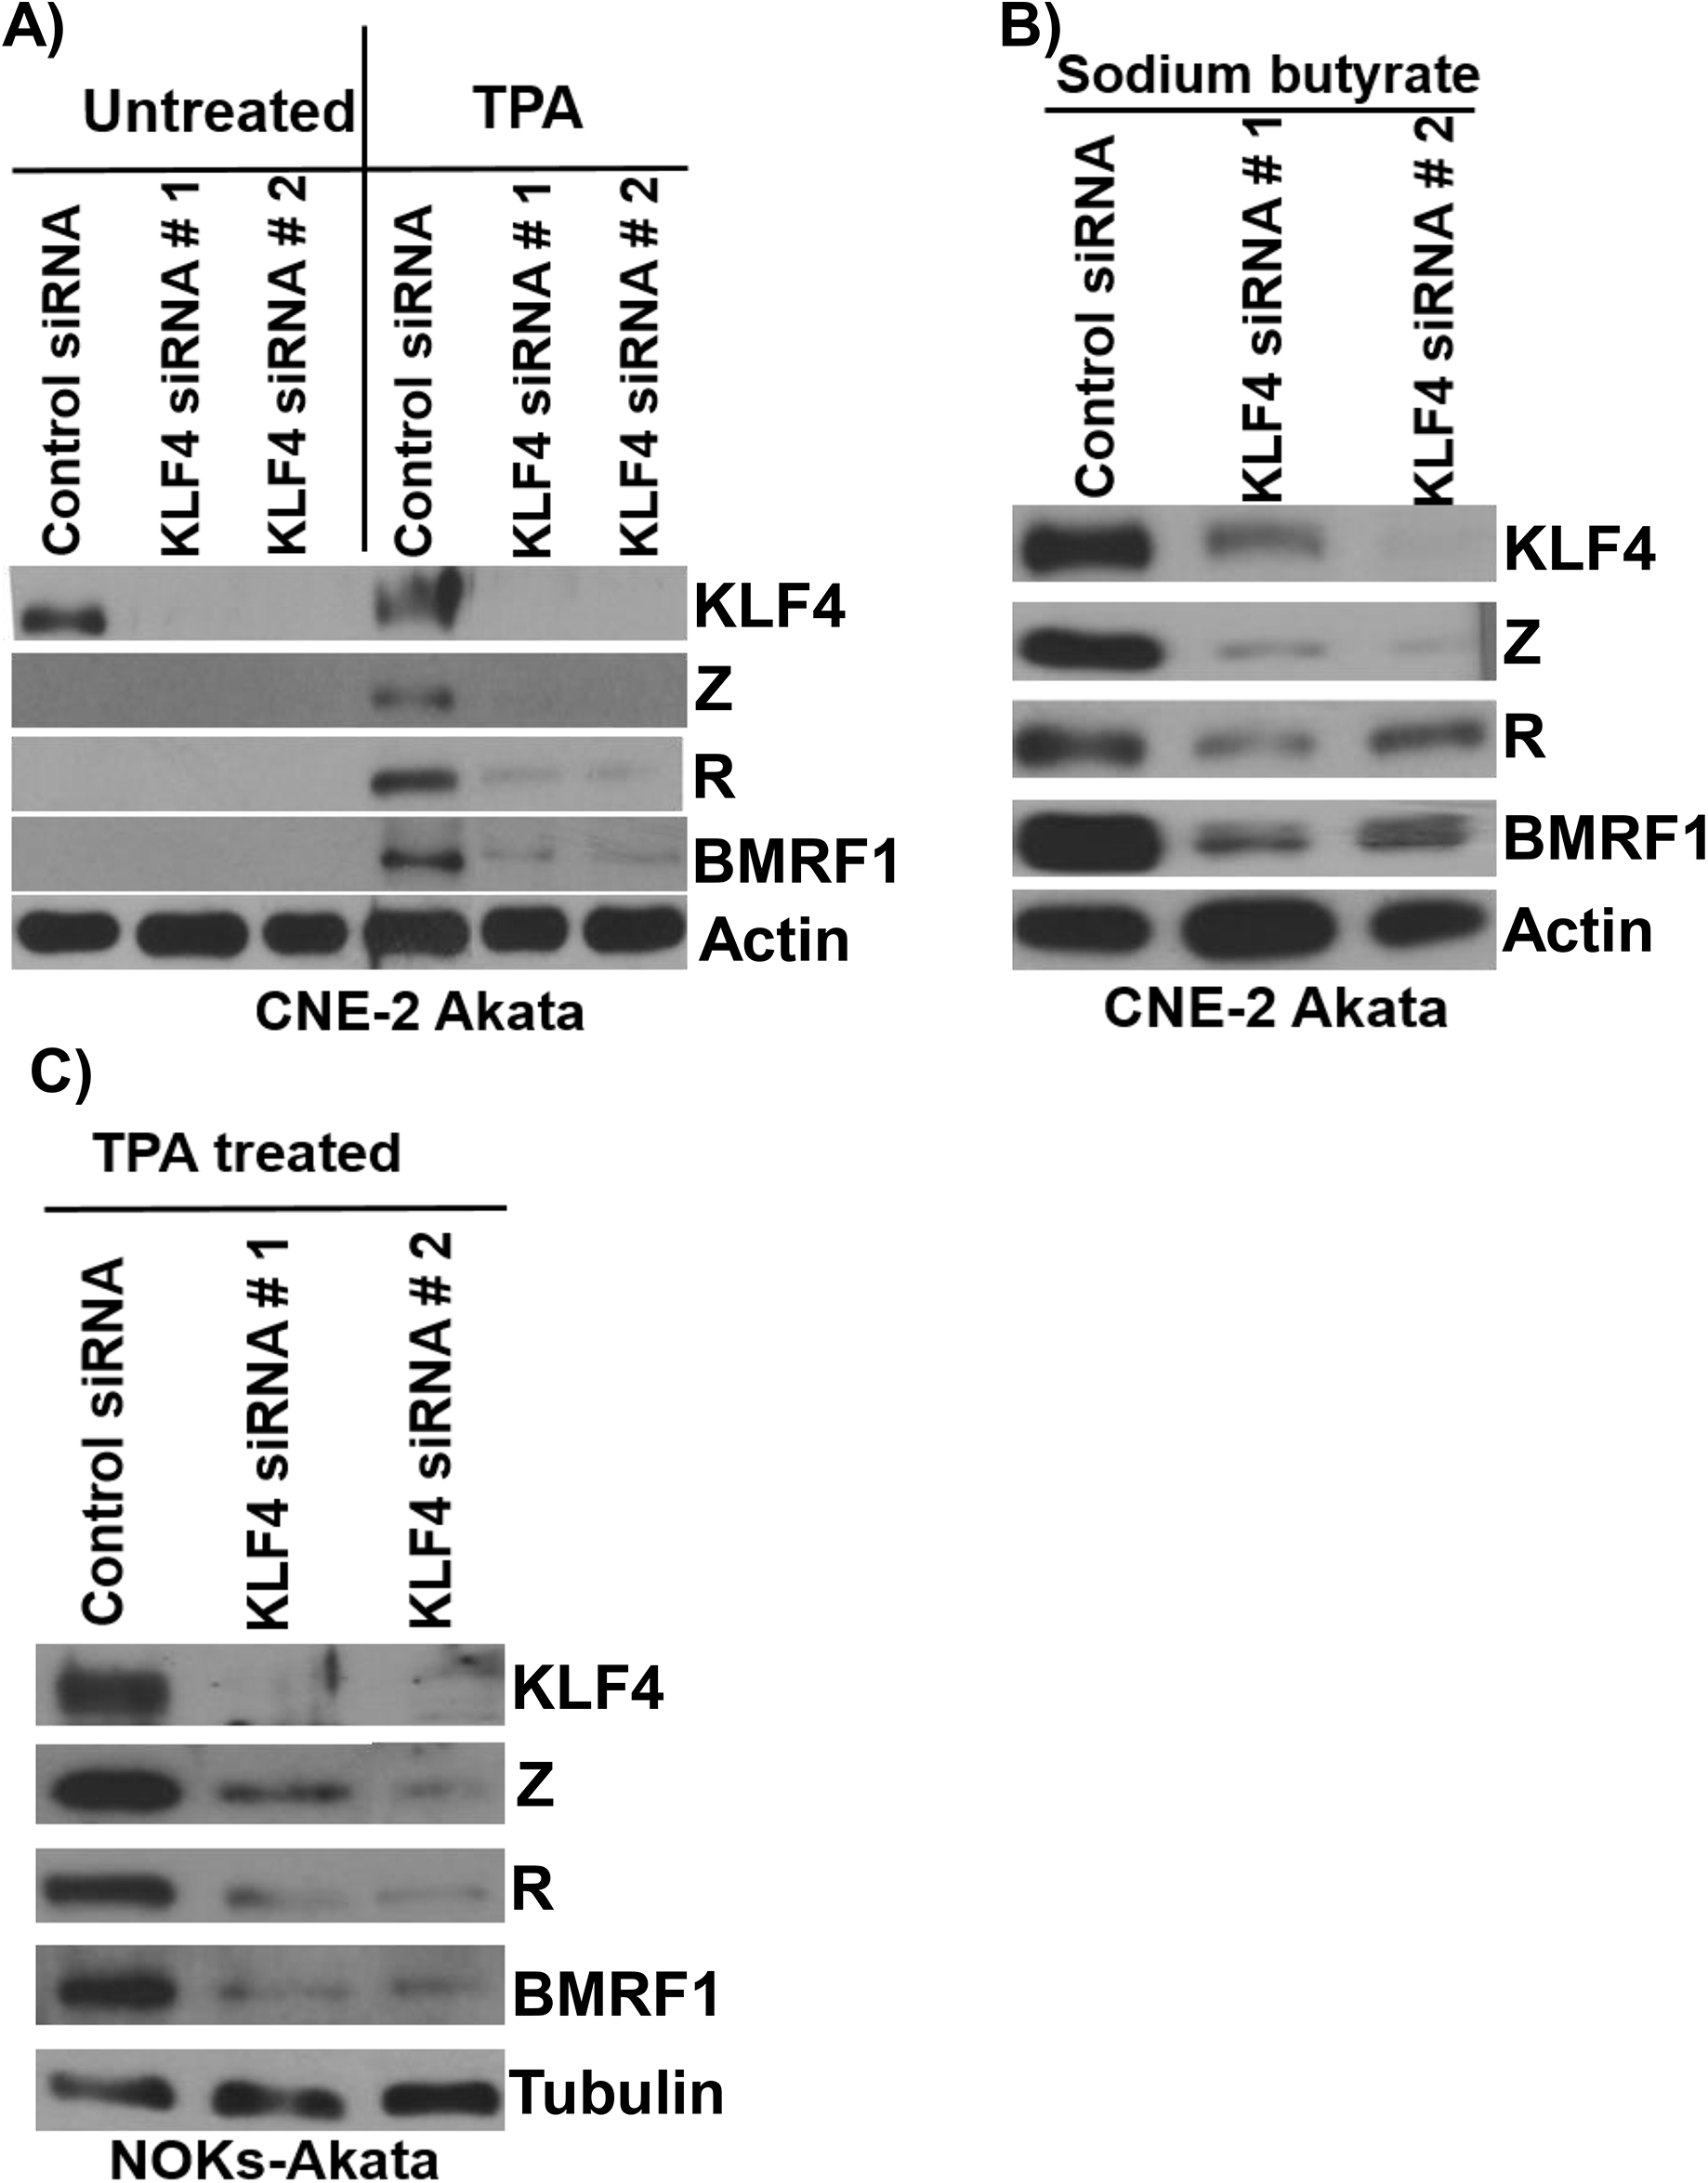 Endogenous KLF4 is required for TPA and sodium butyrate mediated lytic EBV reactivation in epithelial cell lines.